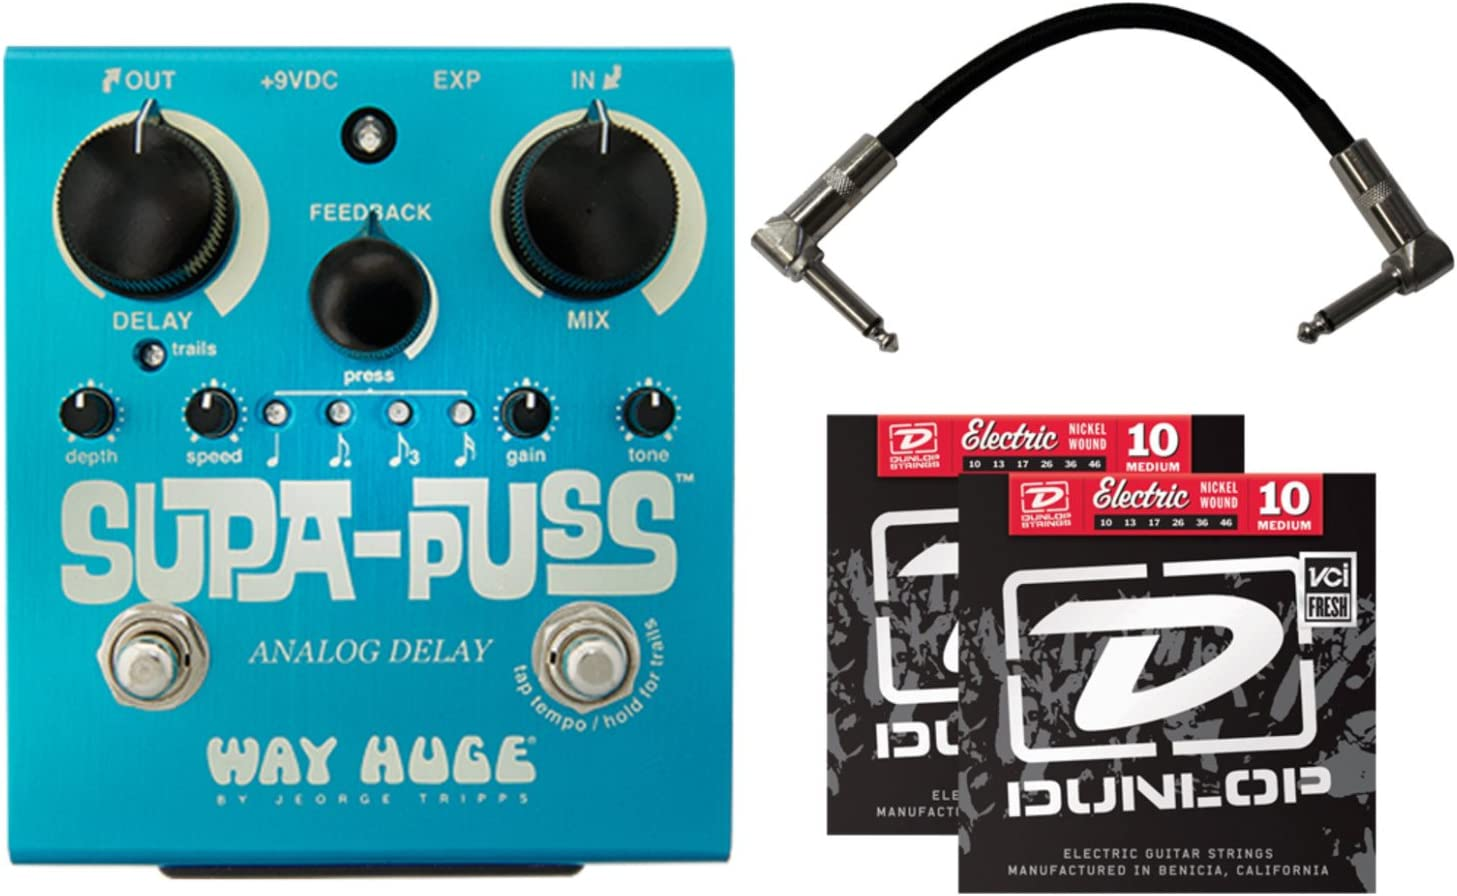 Dunlop Way Huge WHE707 Supa-Puss Analog Delay Guitar Effects Pedal